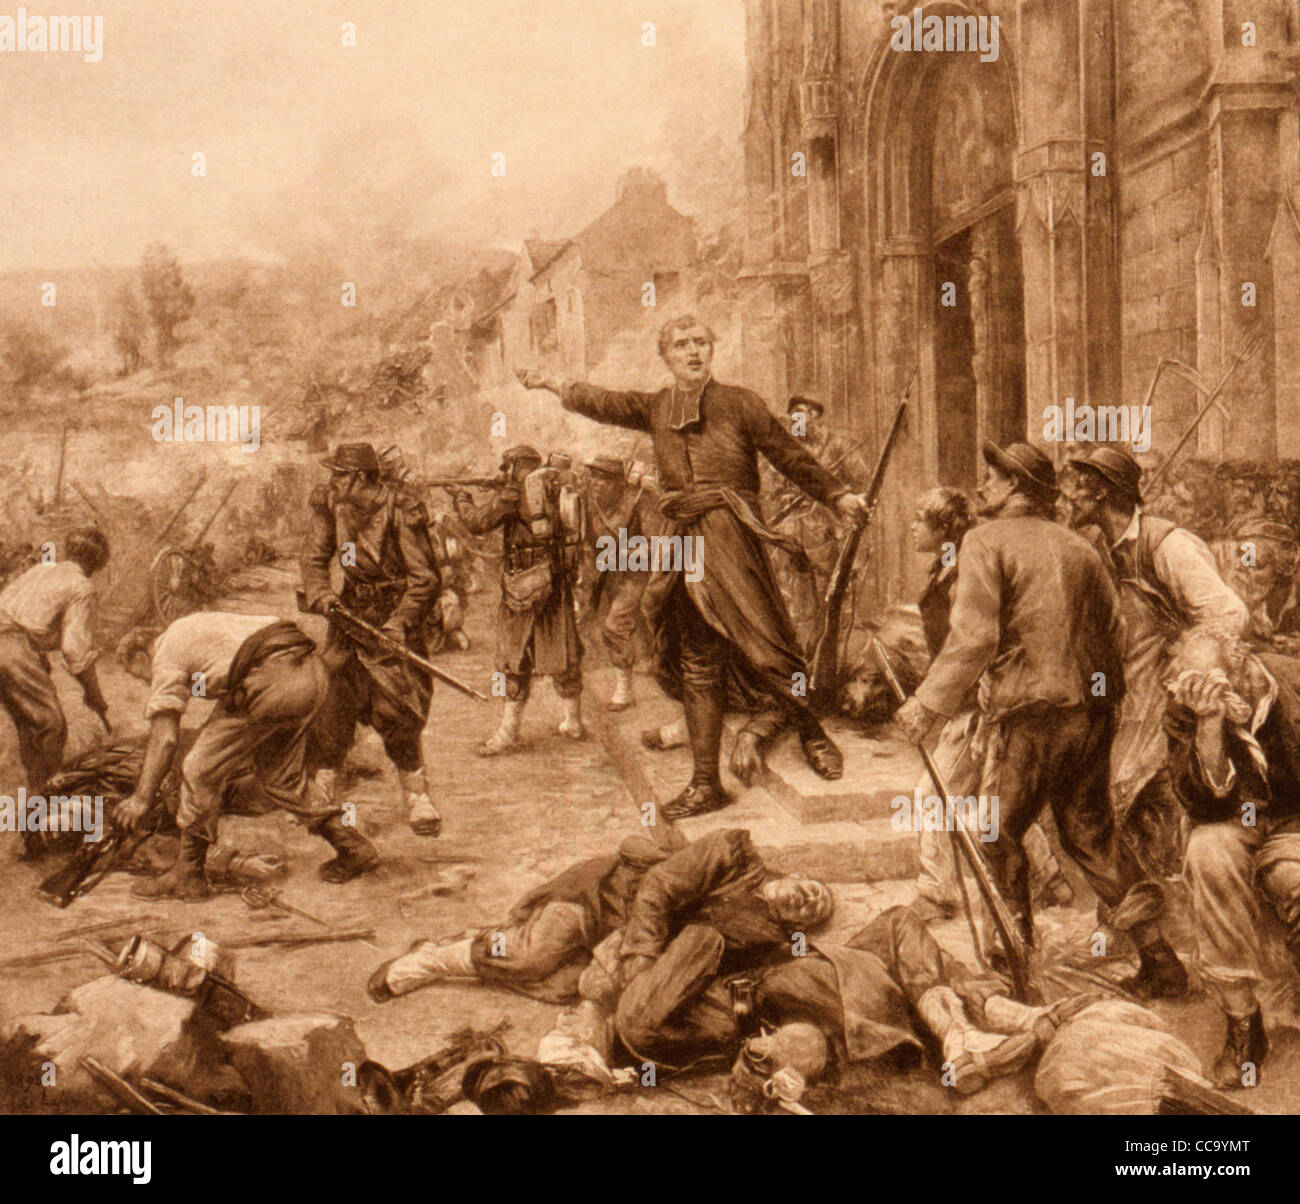 Bazeilles 1870 Franco-Prussian War battle, in front of church, in Bazeilles, France. - Stock Image